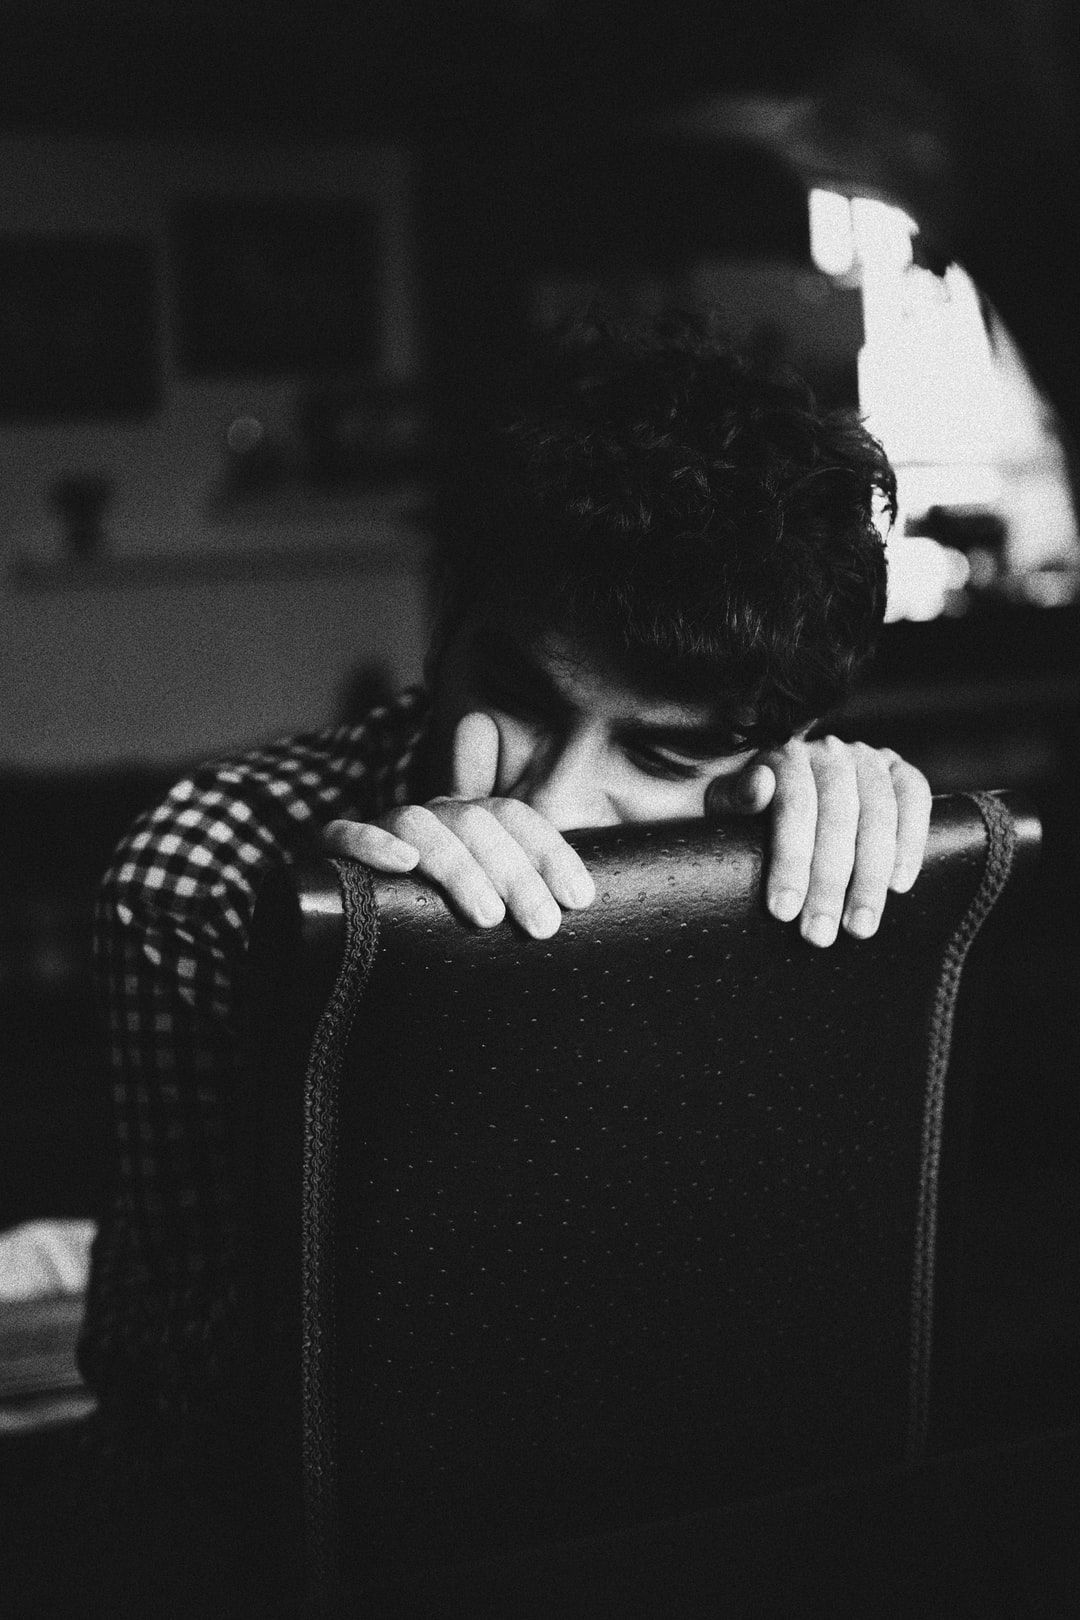 Somber Download This Photo By Shaian Ramesht On Unsplash Girly Pictures Photo Grayscale